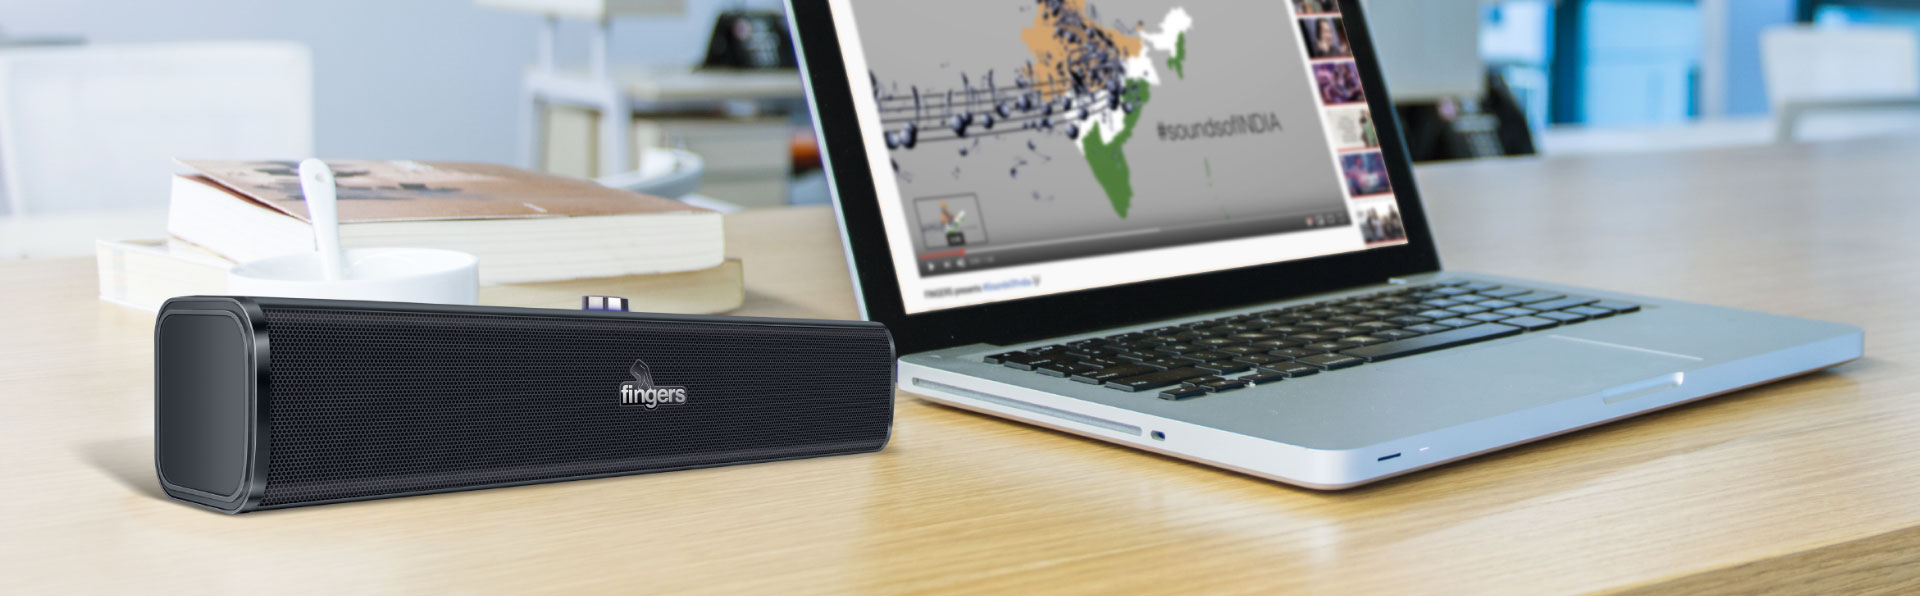 Fingers P 2.0 Stereo Speaker With AC Power